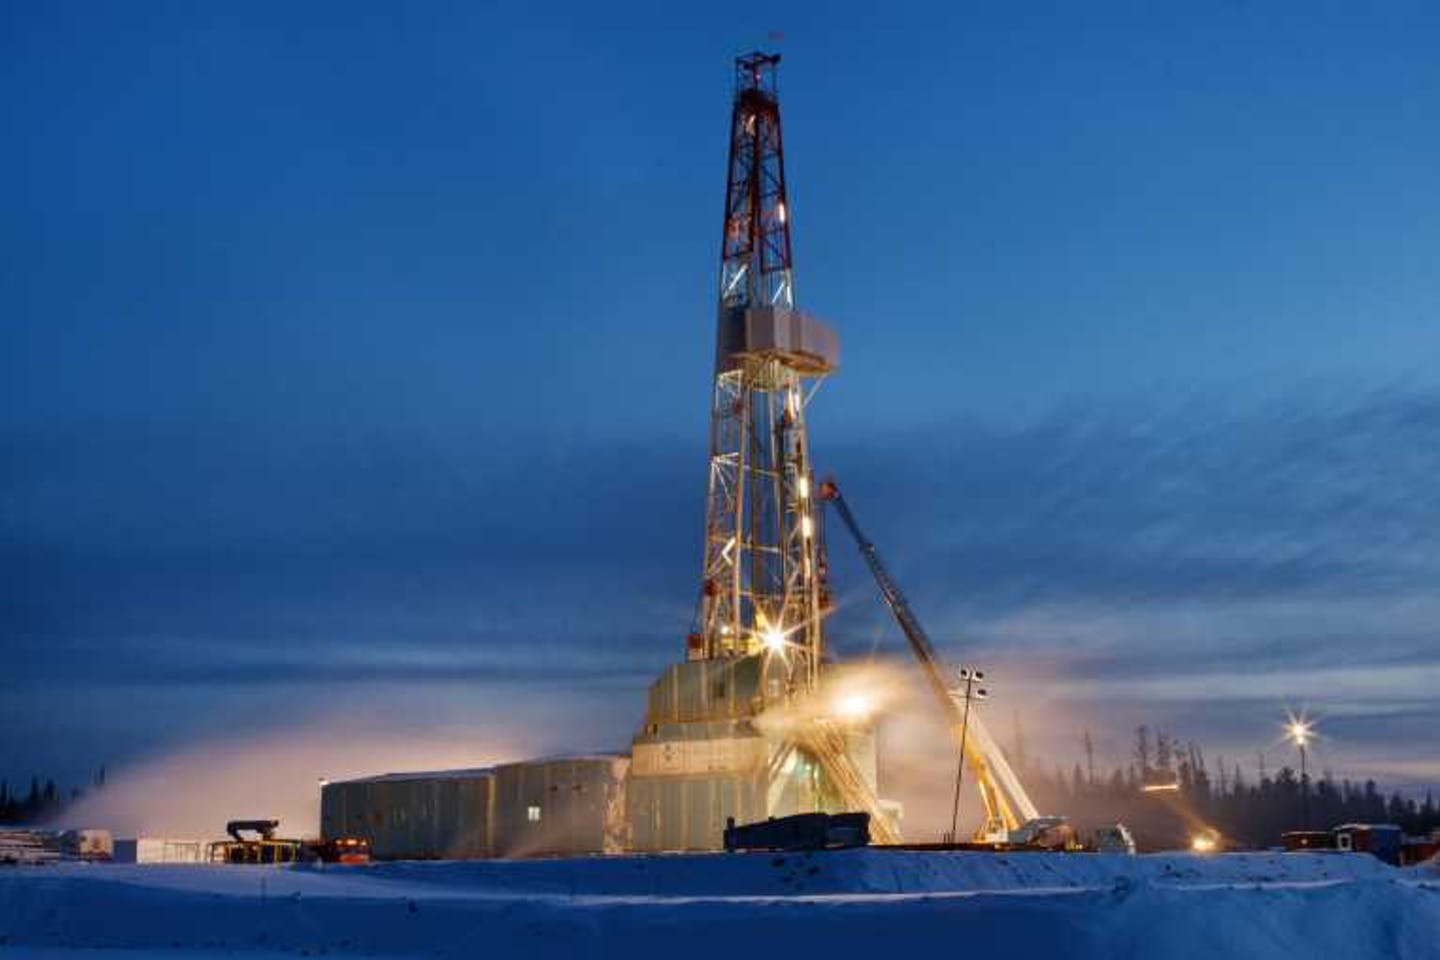 Hydrofracking unconventional oil and gas